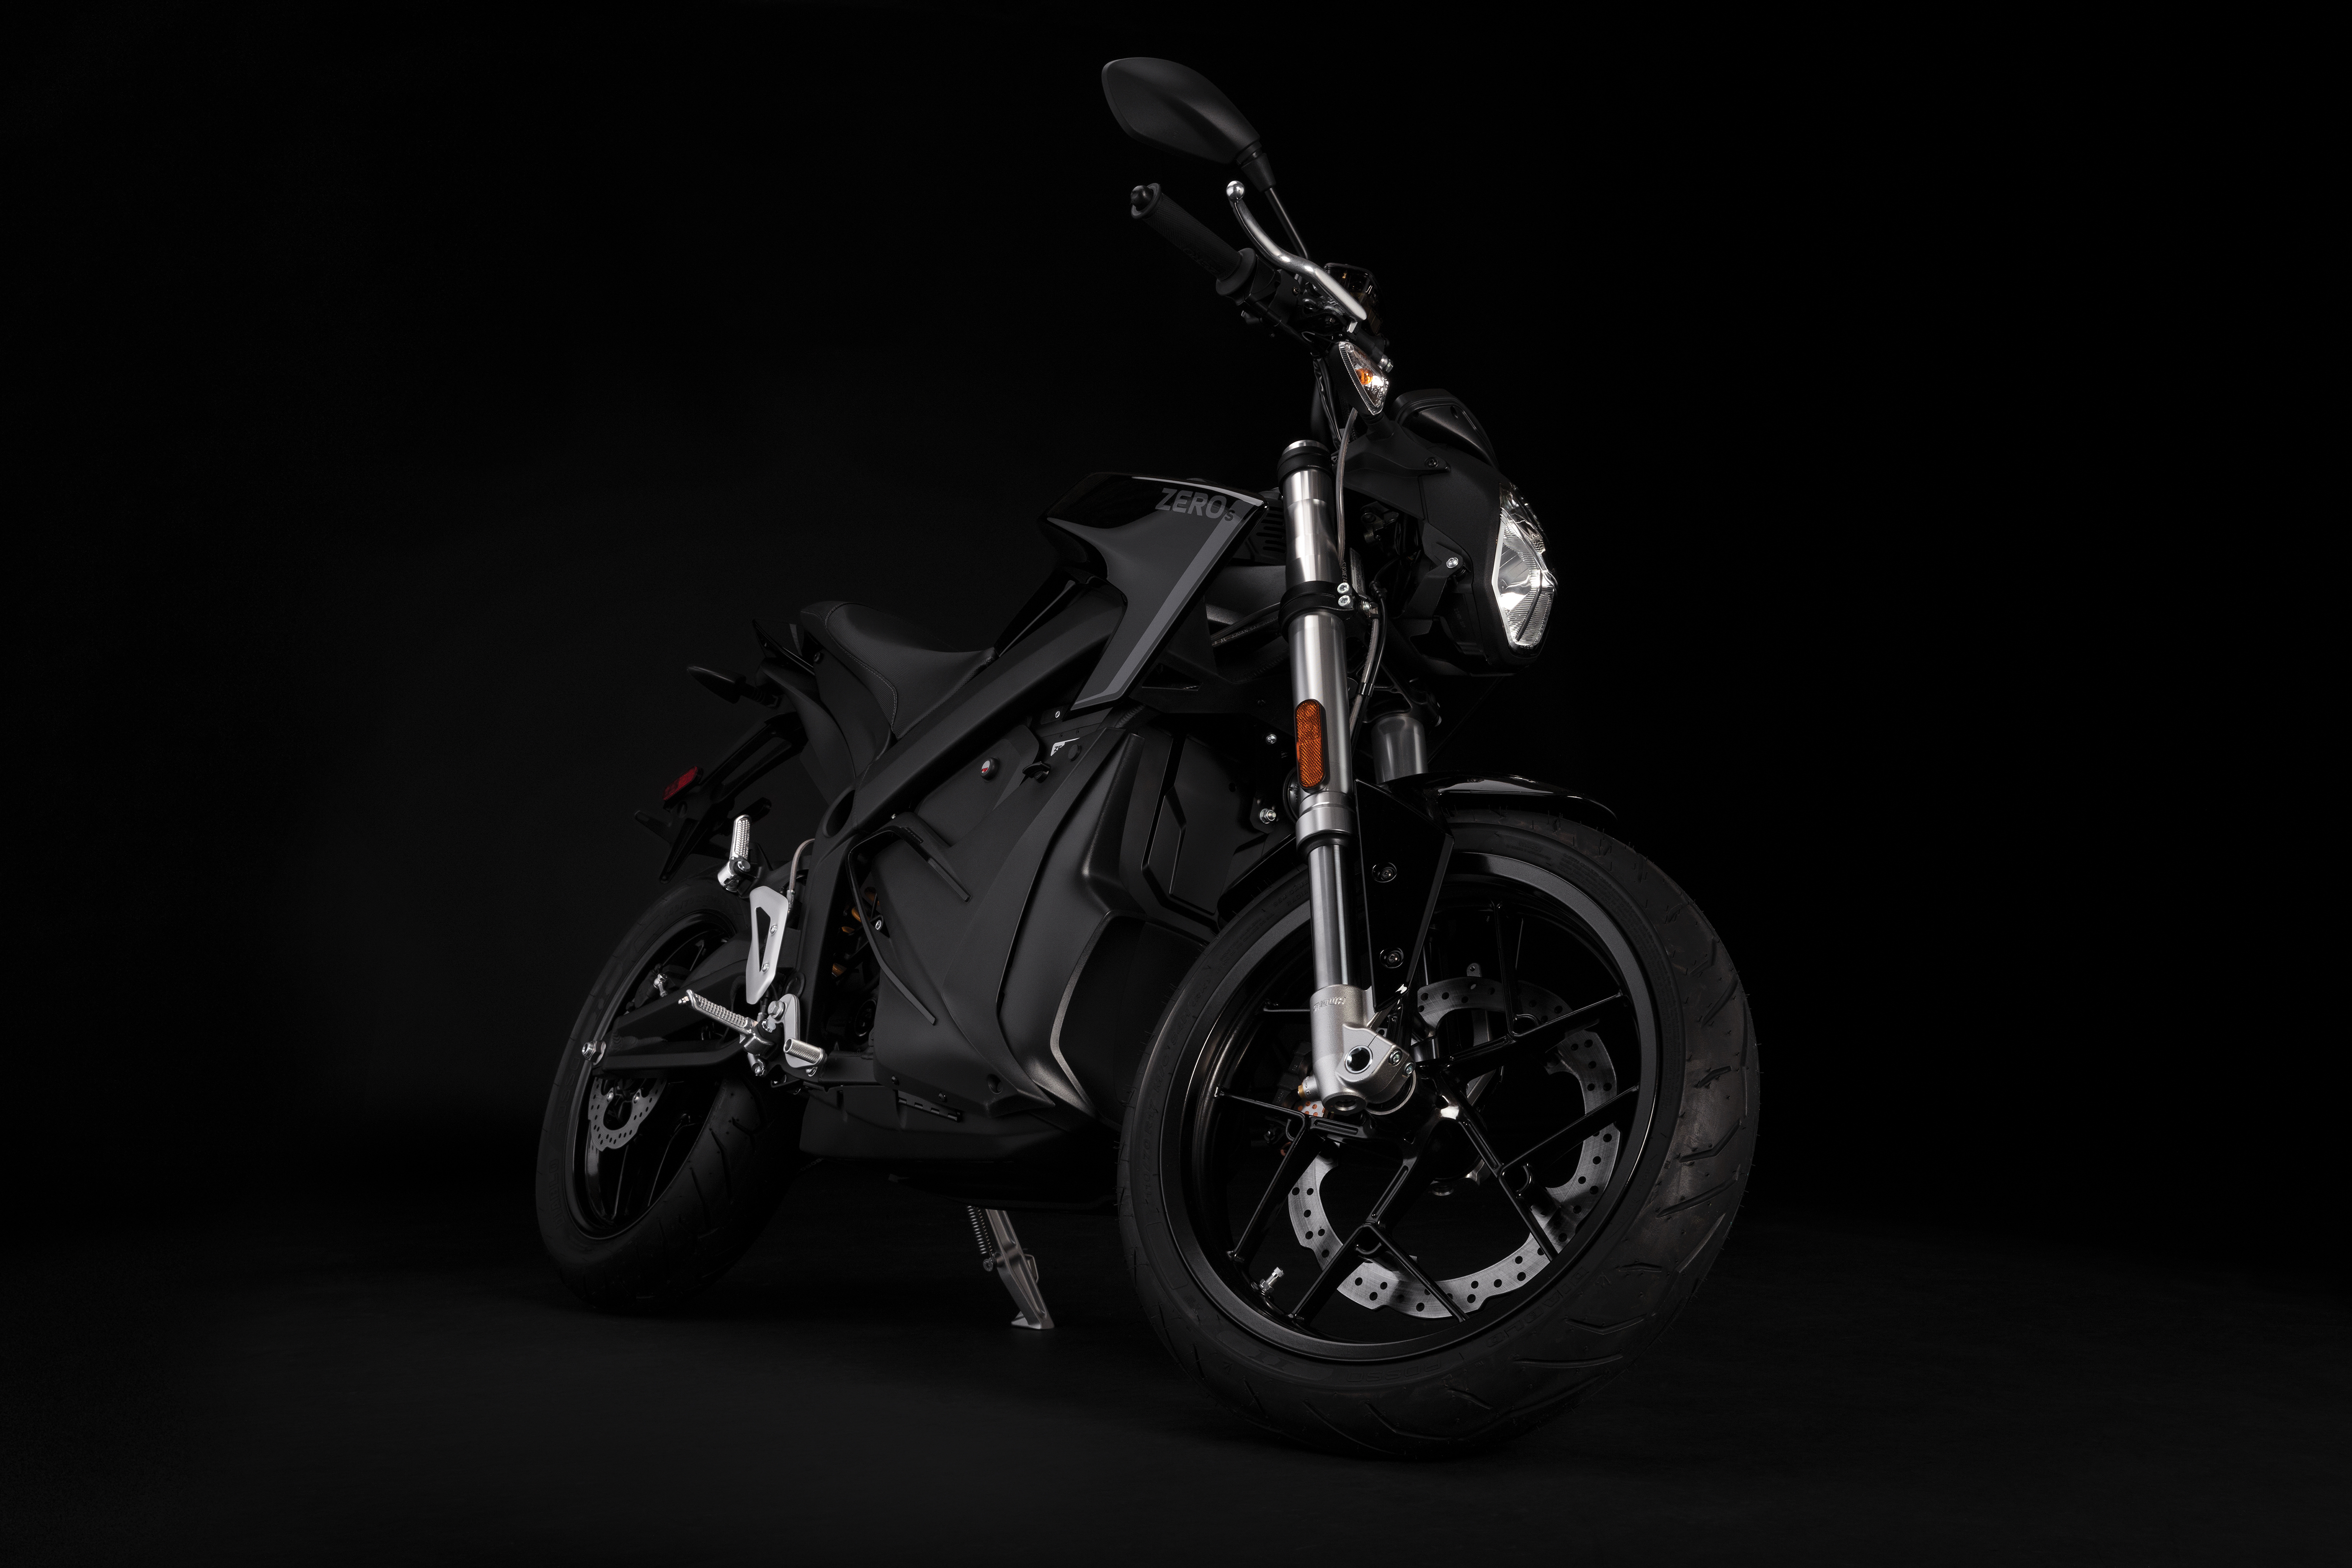 2019 Zero S Electric Motorcycle: Angle Right, Lean